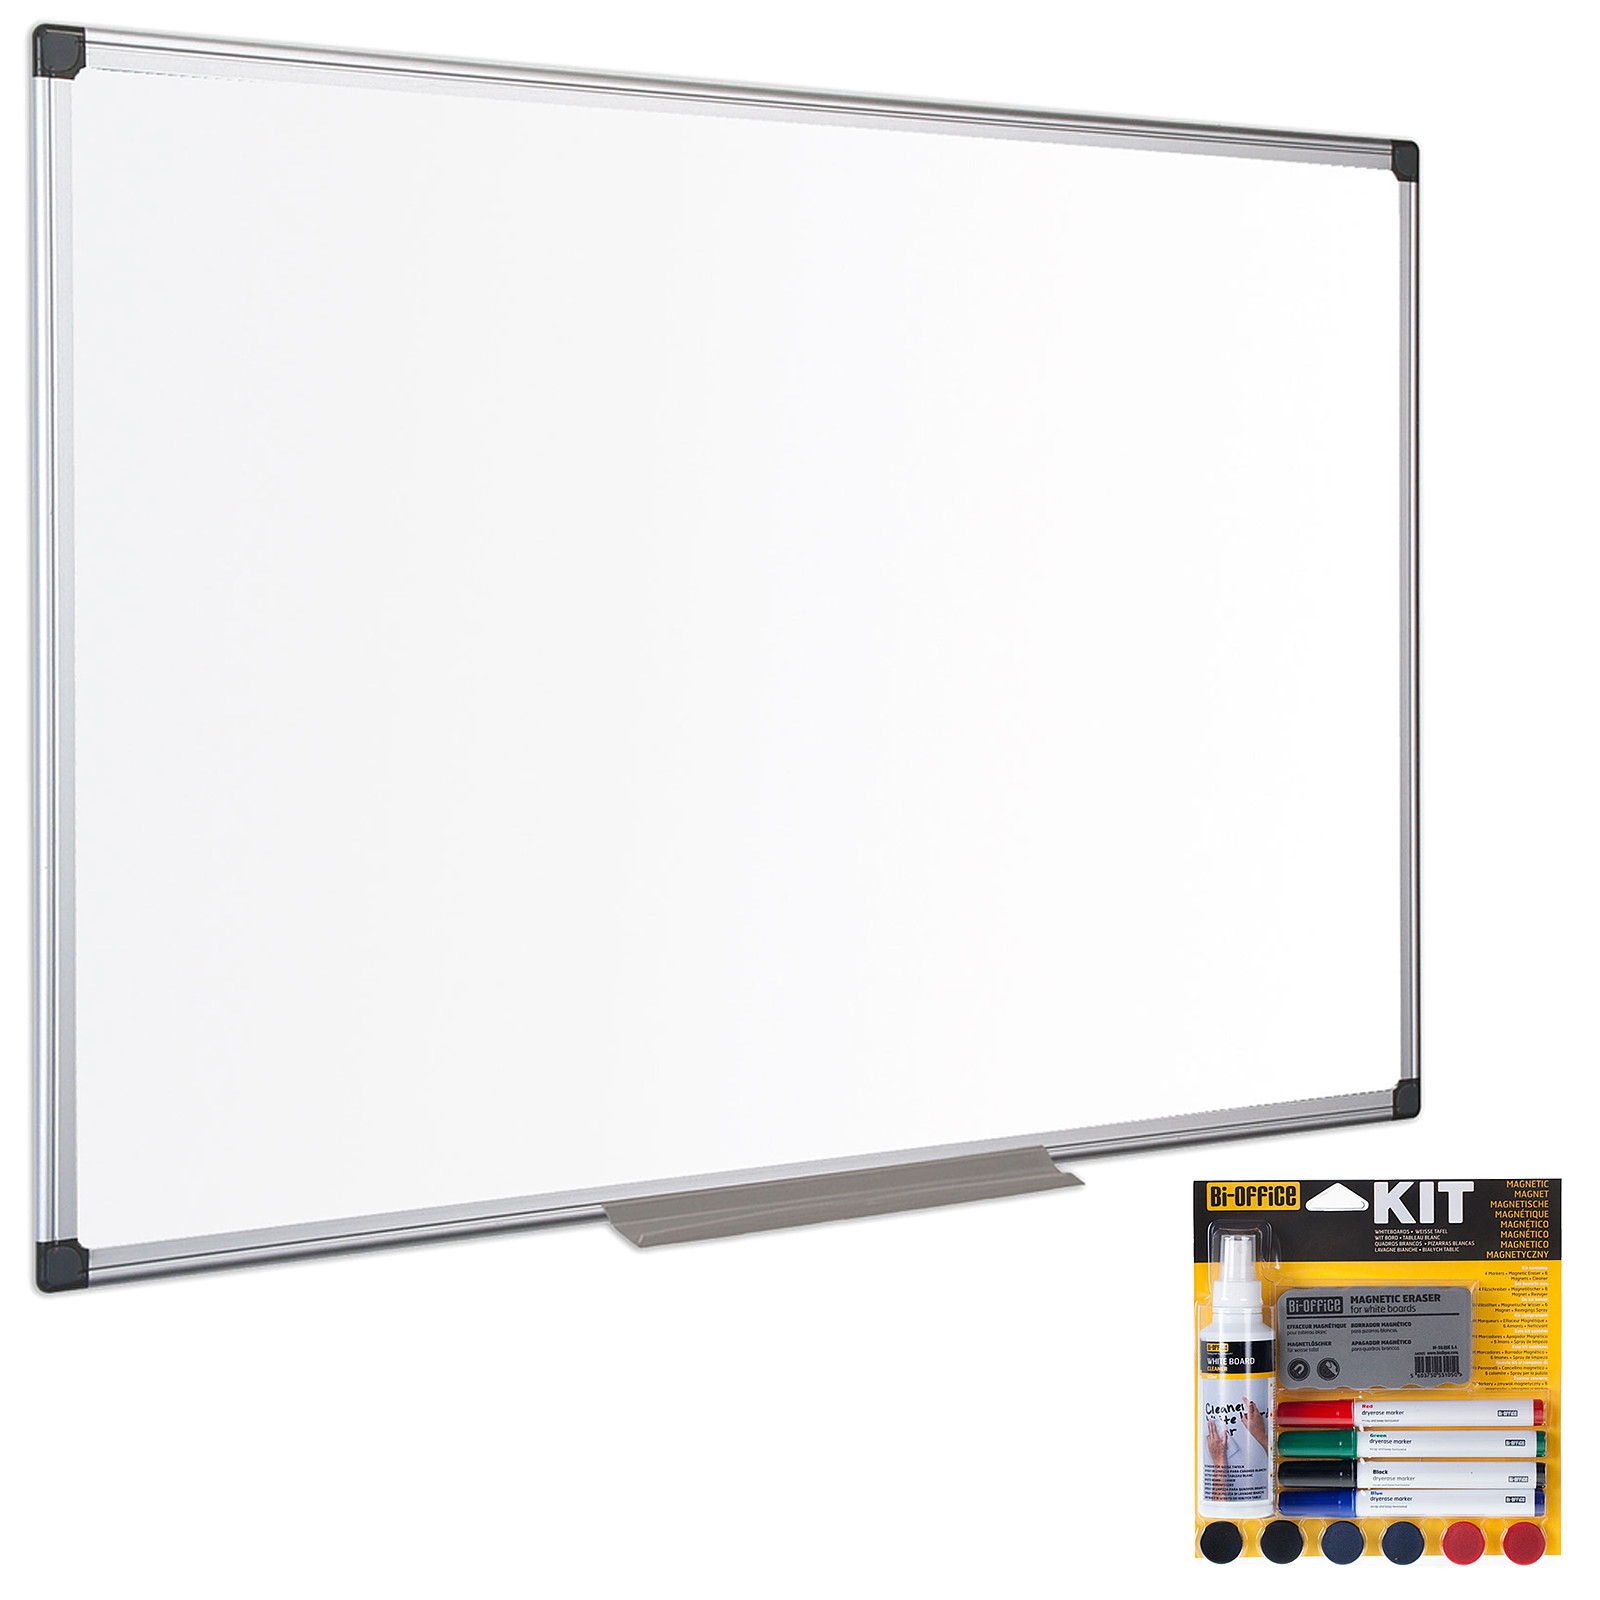 bi office tableau blanc laque 120 x 90 cm bi office kit magnetique